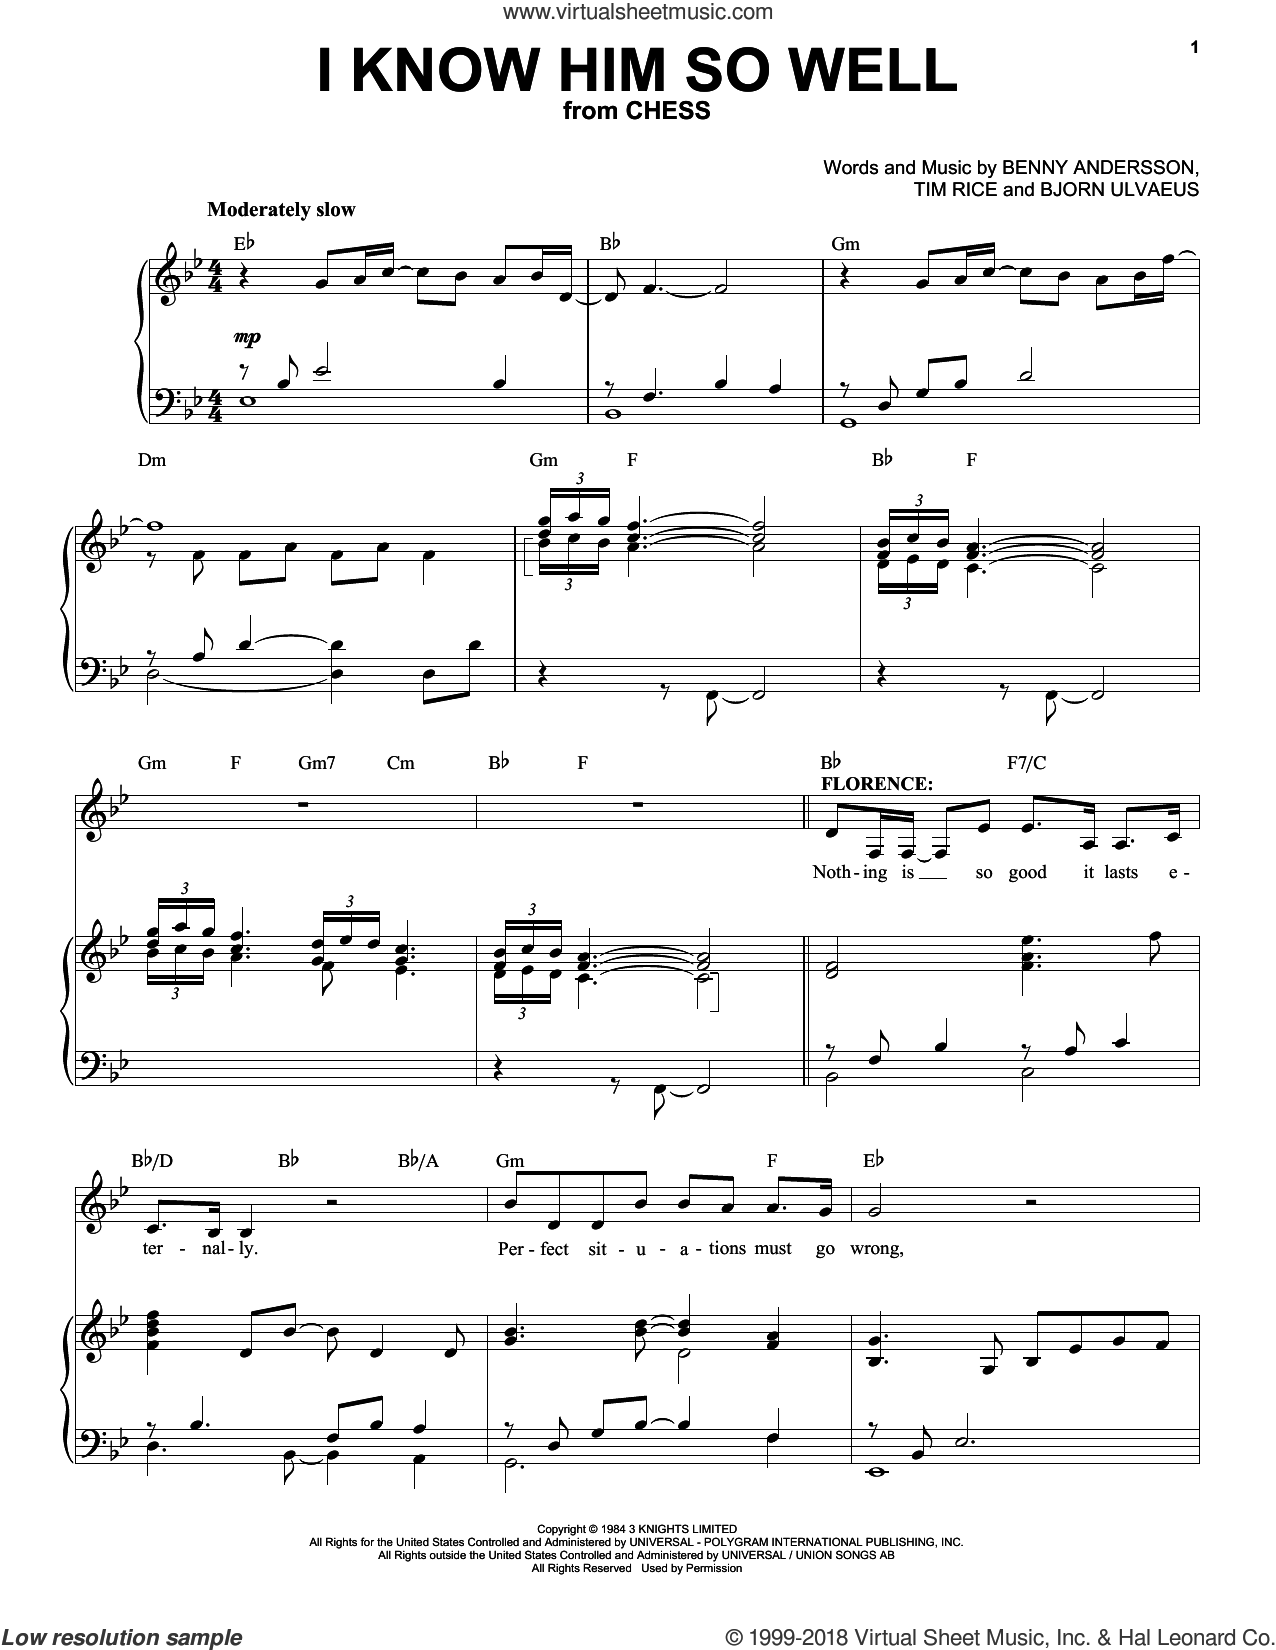 I Know Him So Well sheet music for voice and piano by Tim Rice, Benny Andersson and Bjorn Ulvaeus, intermediate skill level